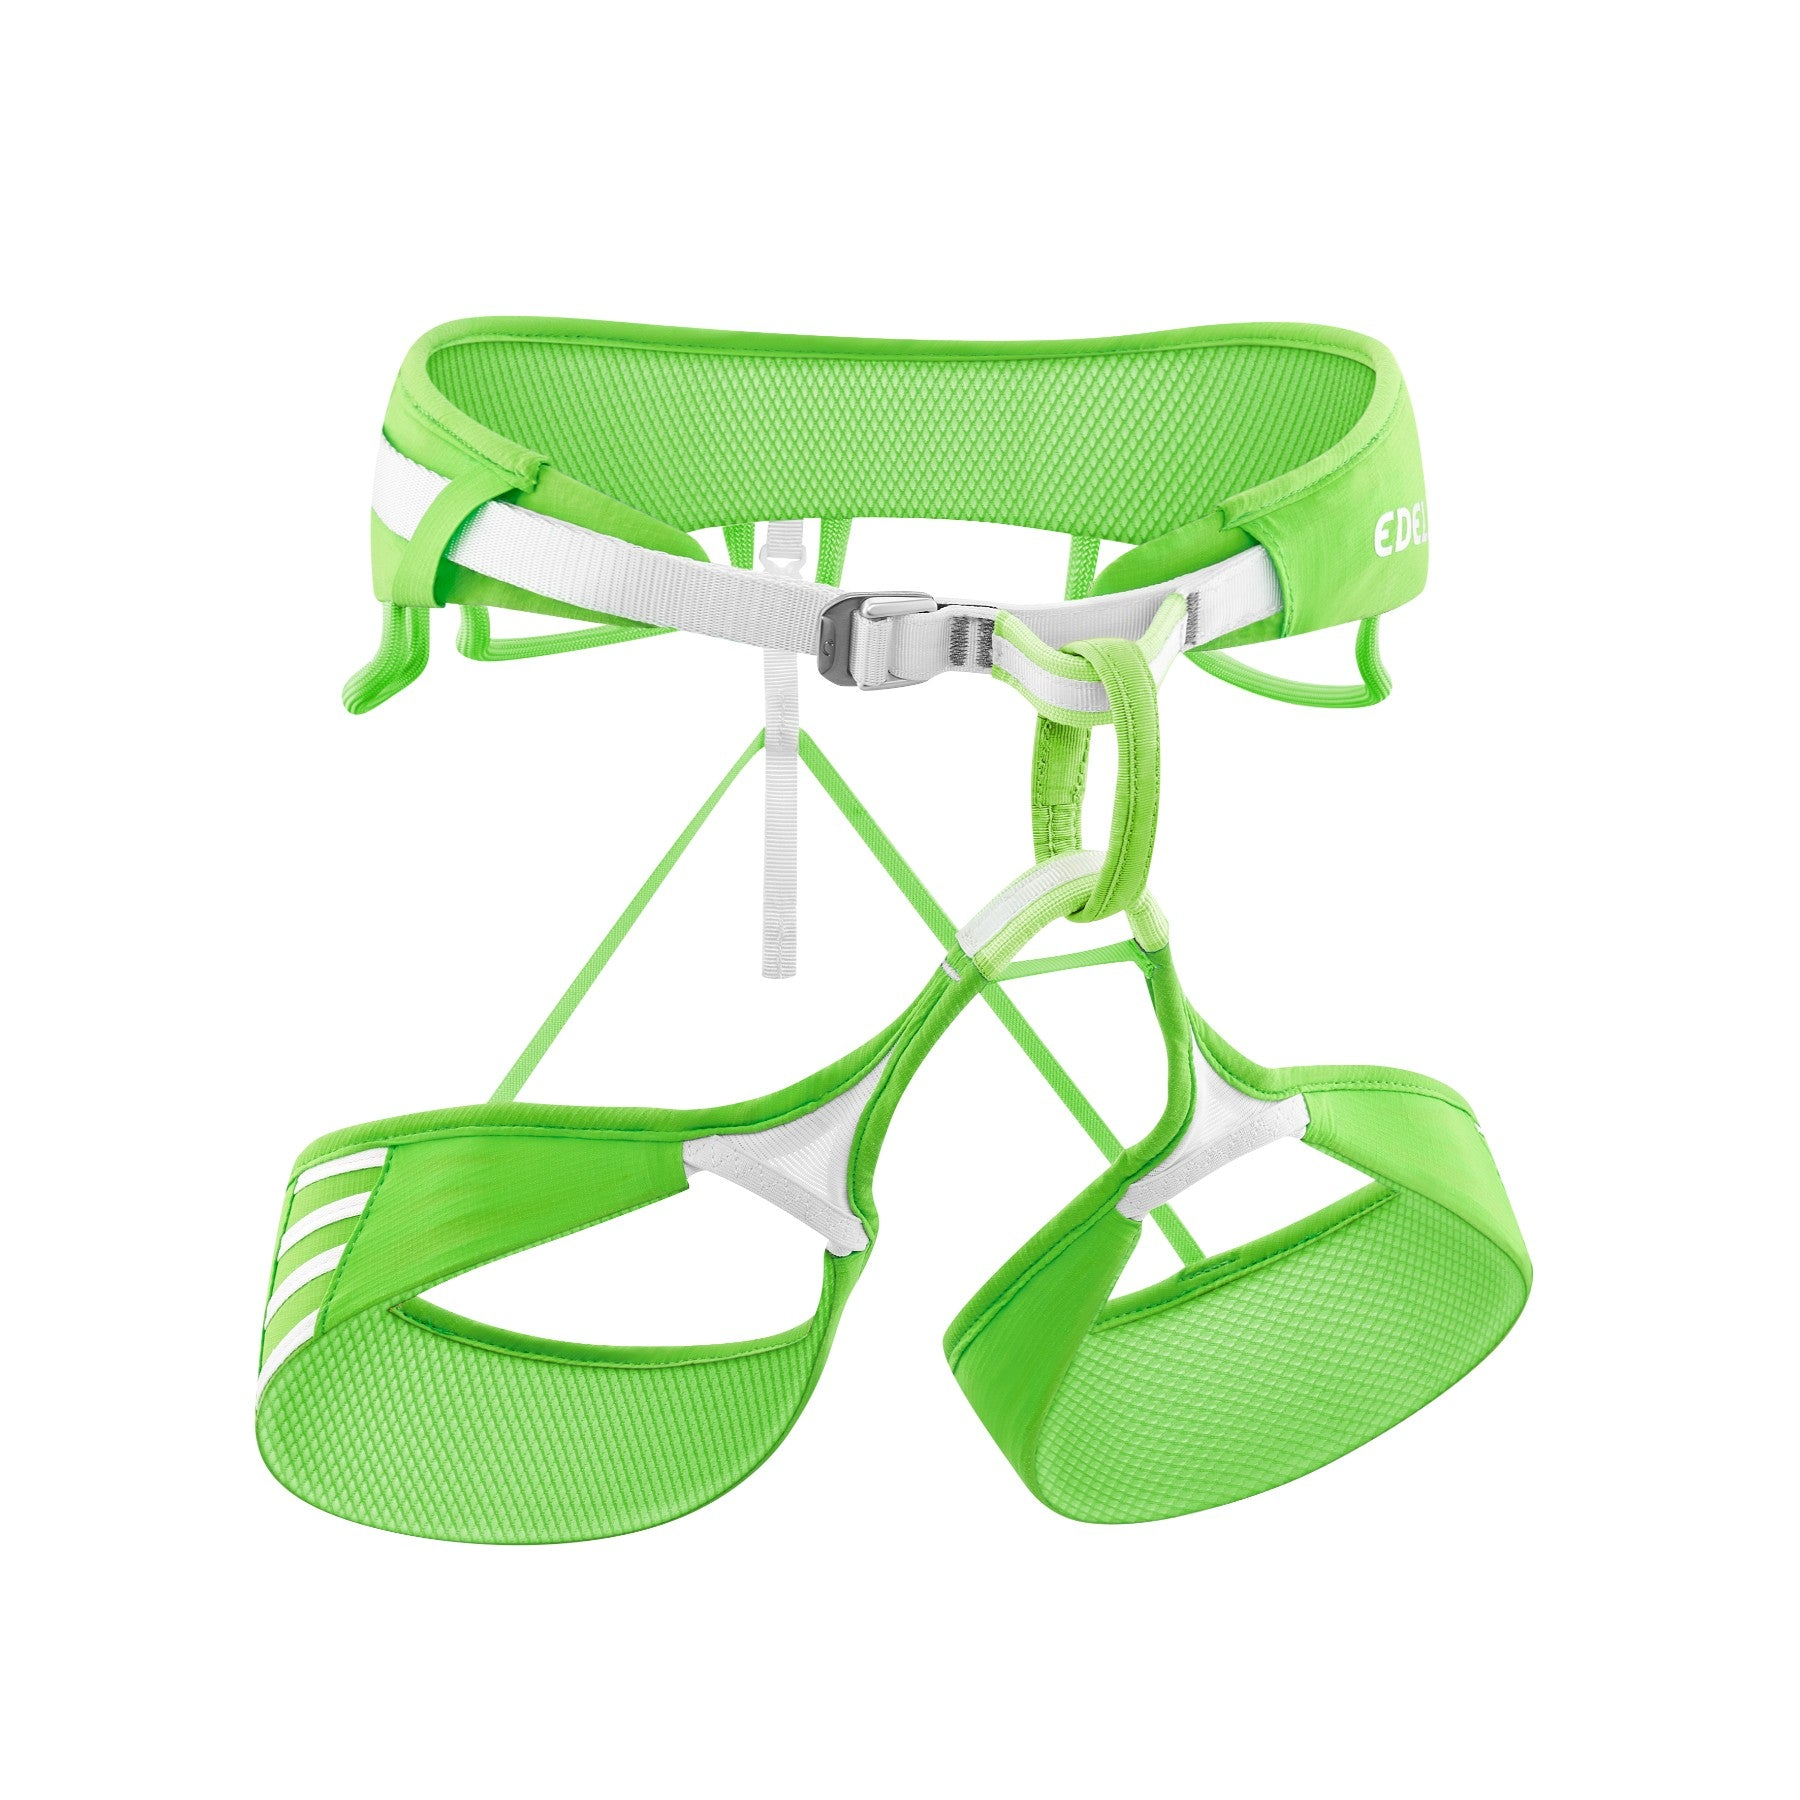 Edelrid Ace Harness, Neon Green, front